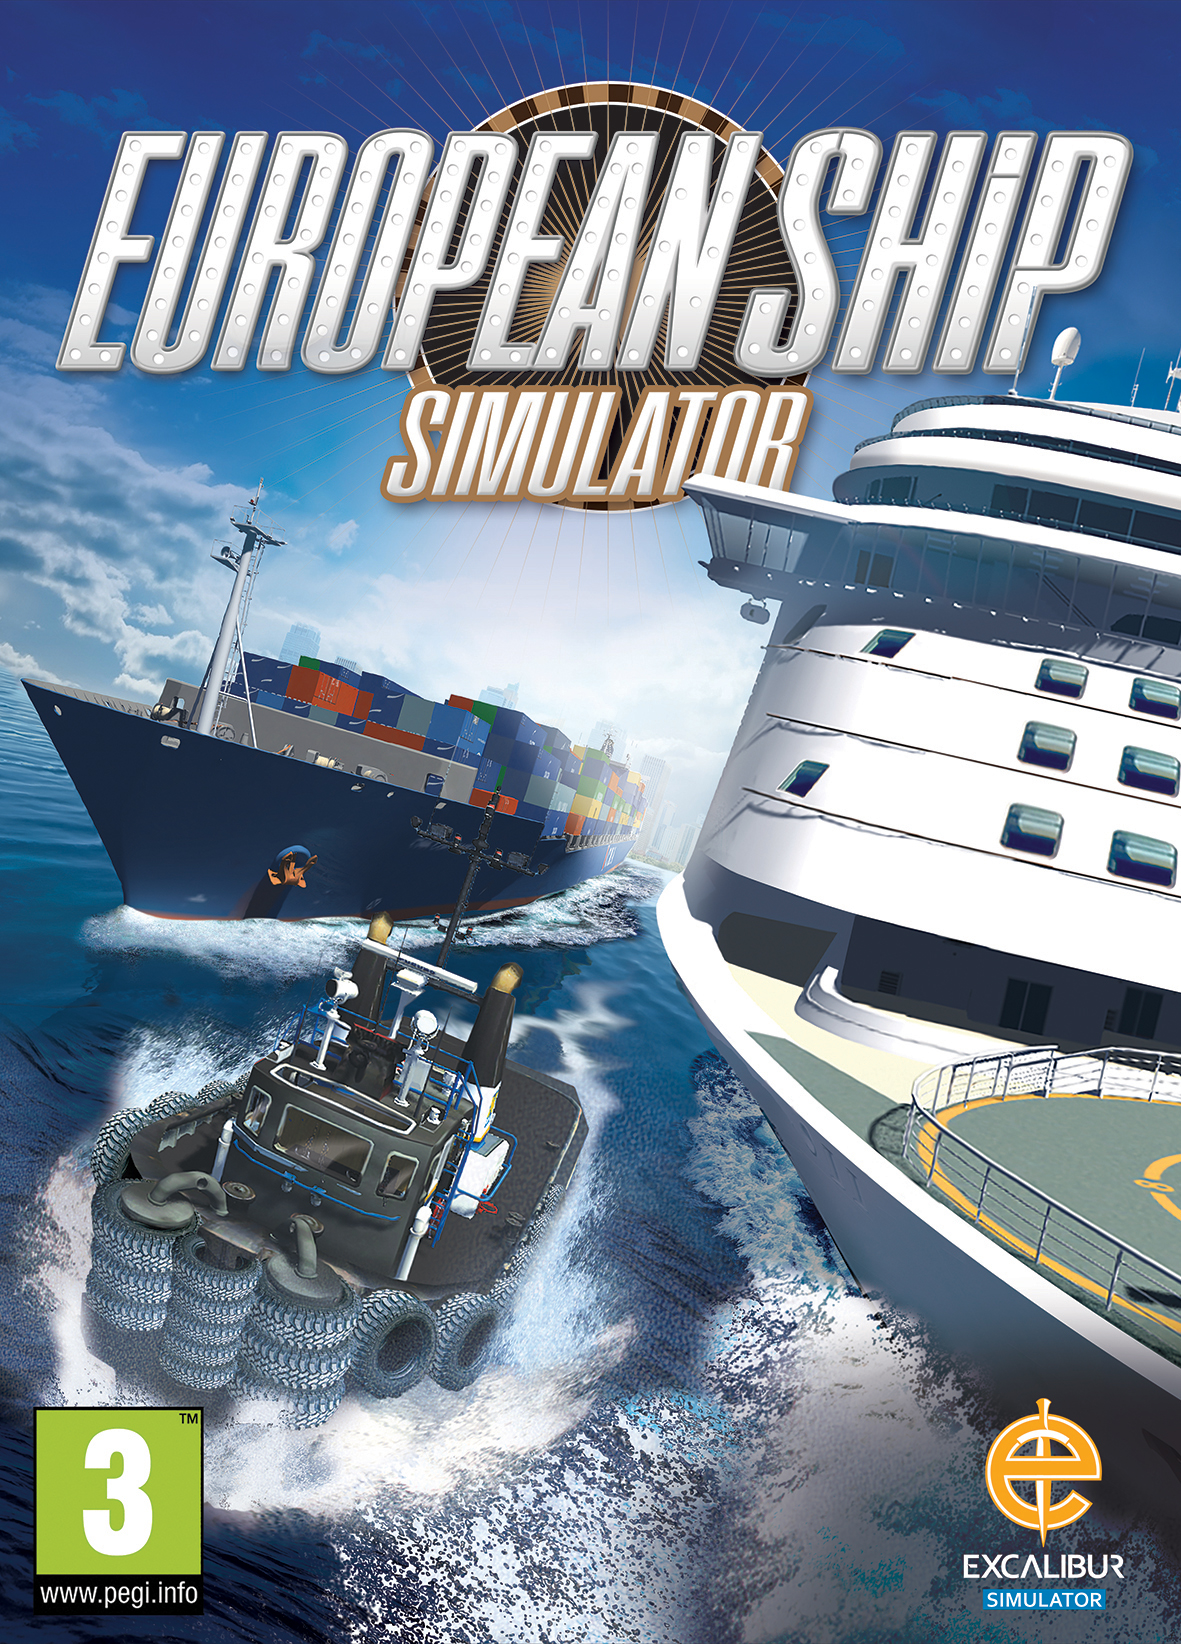 European Ship Simulator Windows Mac Linux Game Mod Db